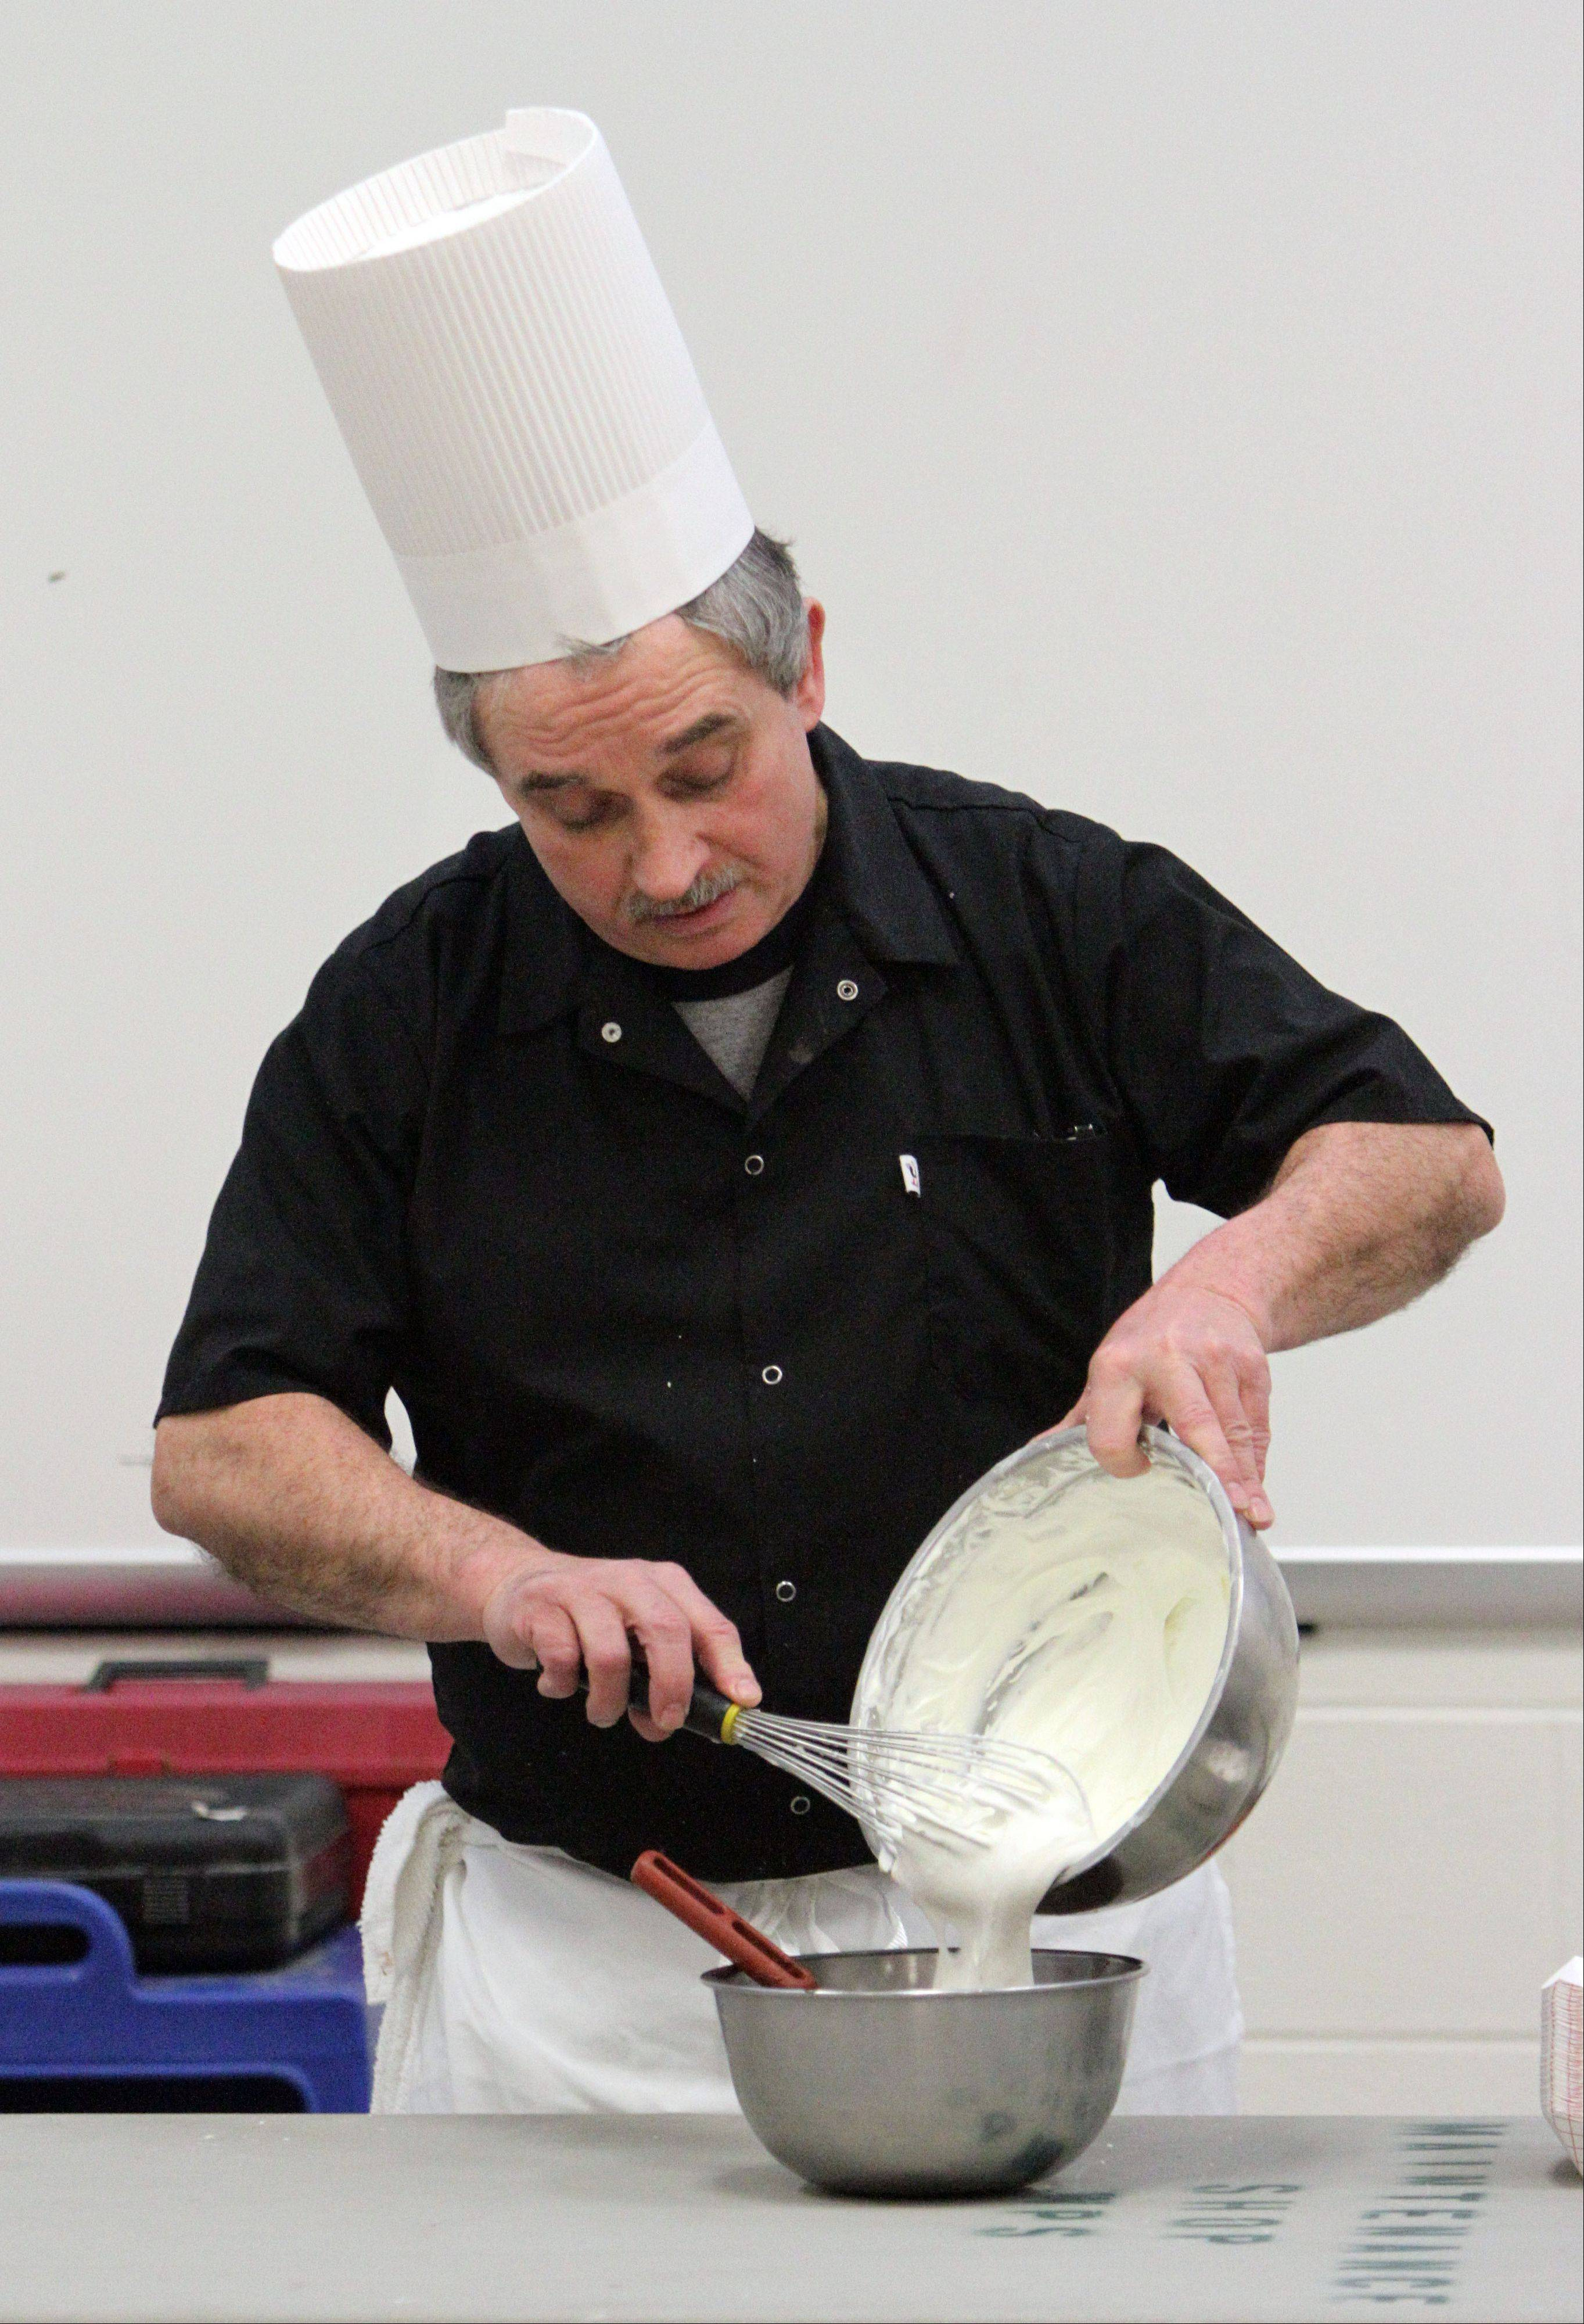 Claude Bouteille, owner/chef of Taste of Paris Restaurant in Mundelein, whips up a chocolate mousse during Thursday's demonstration for sixth-, seventh- and eighth-graders in Maureen Fischer Rivkin's French class at Thomas Jefferson School in Waukegan.